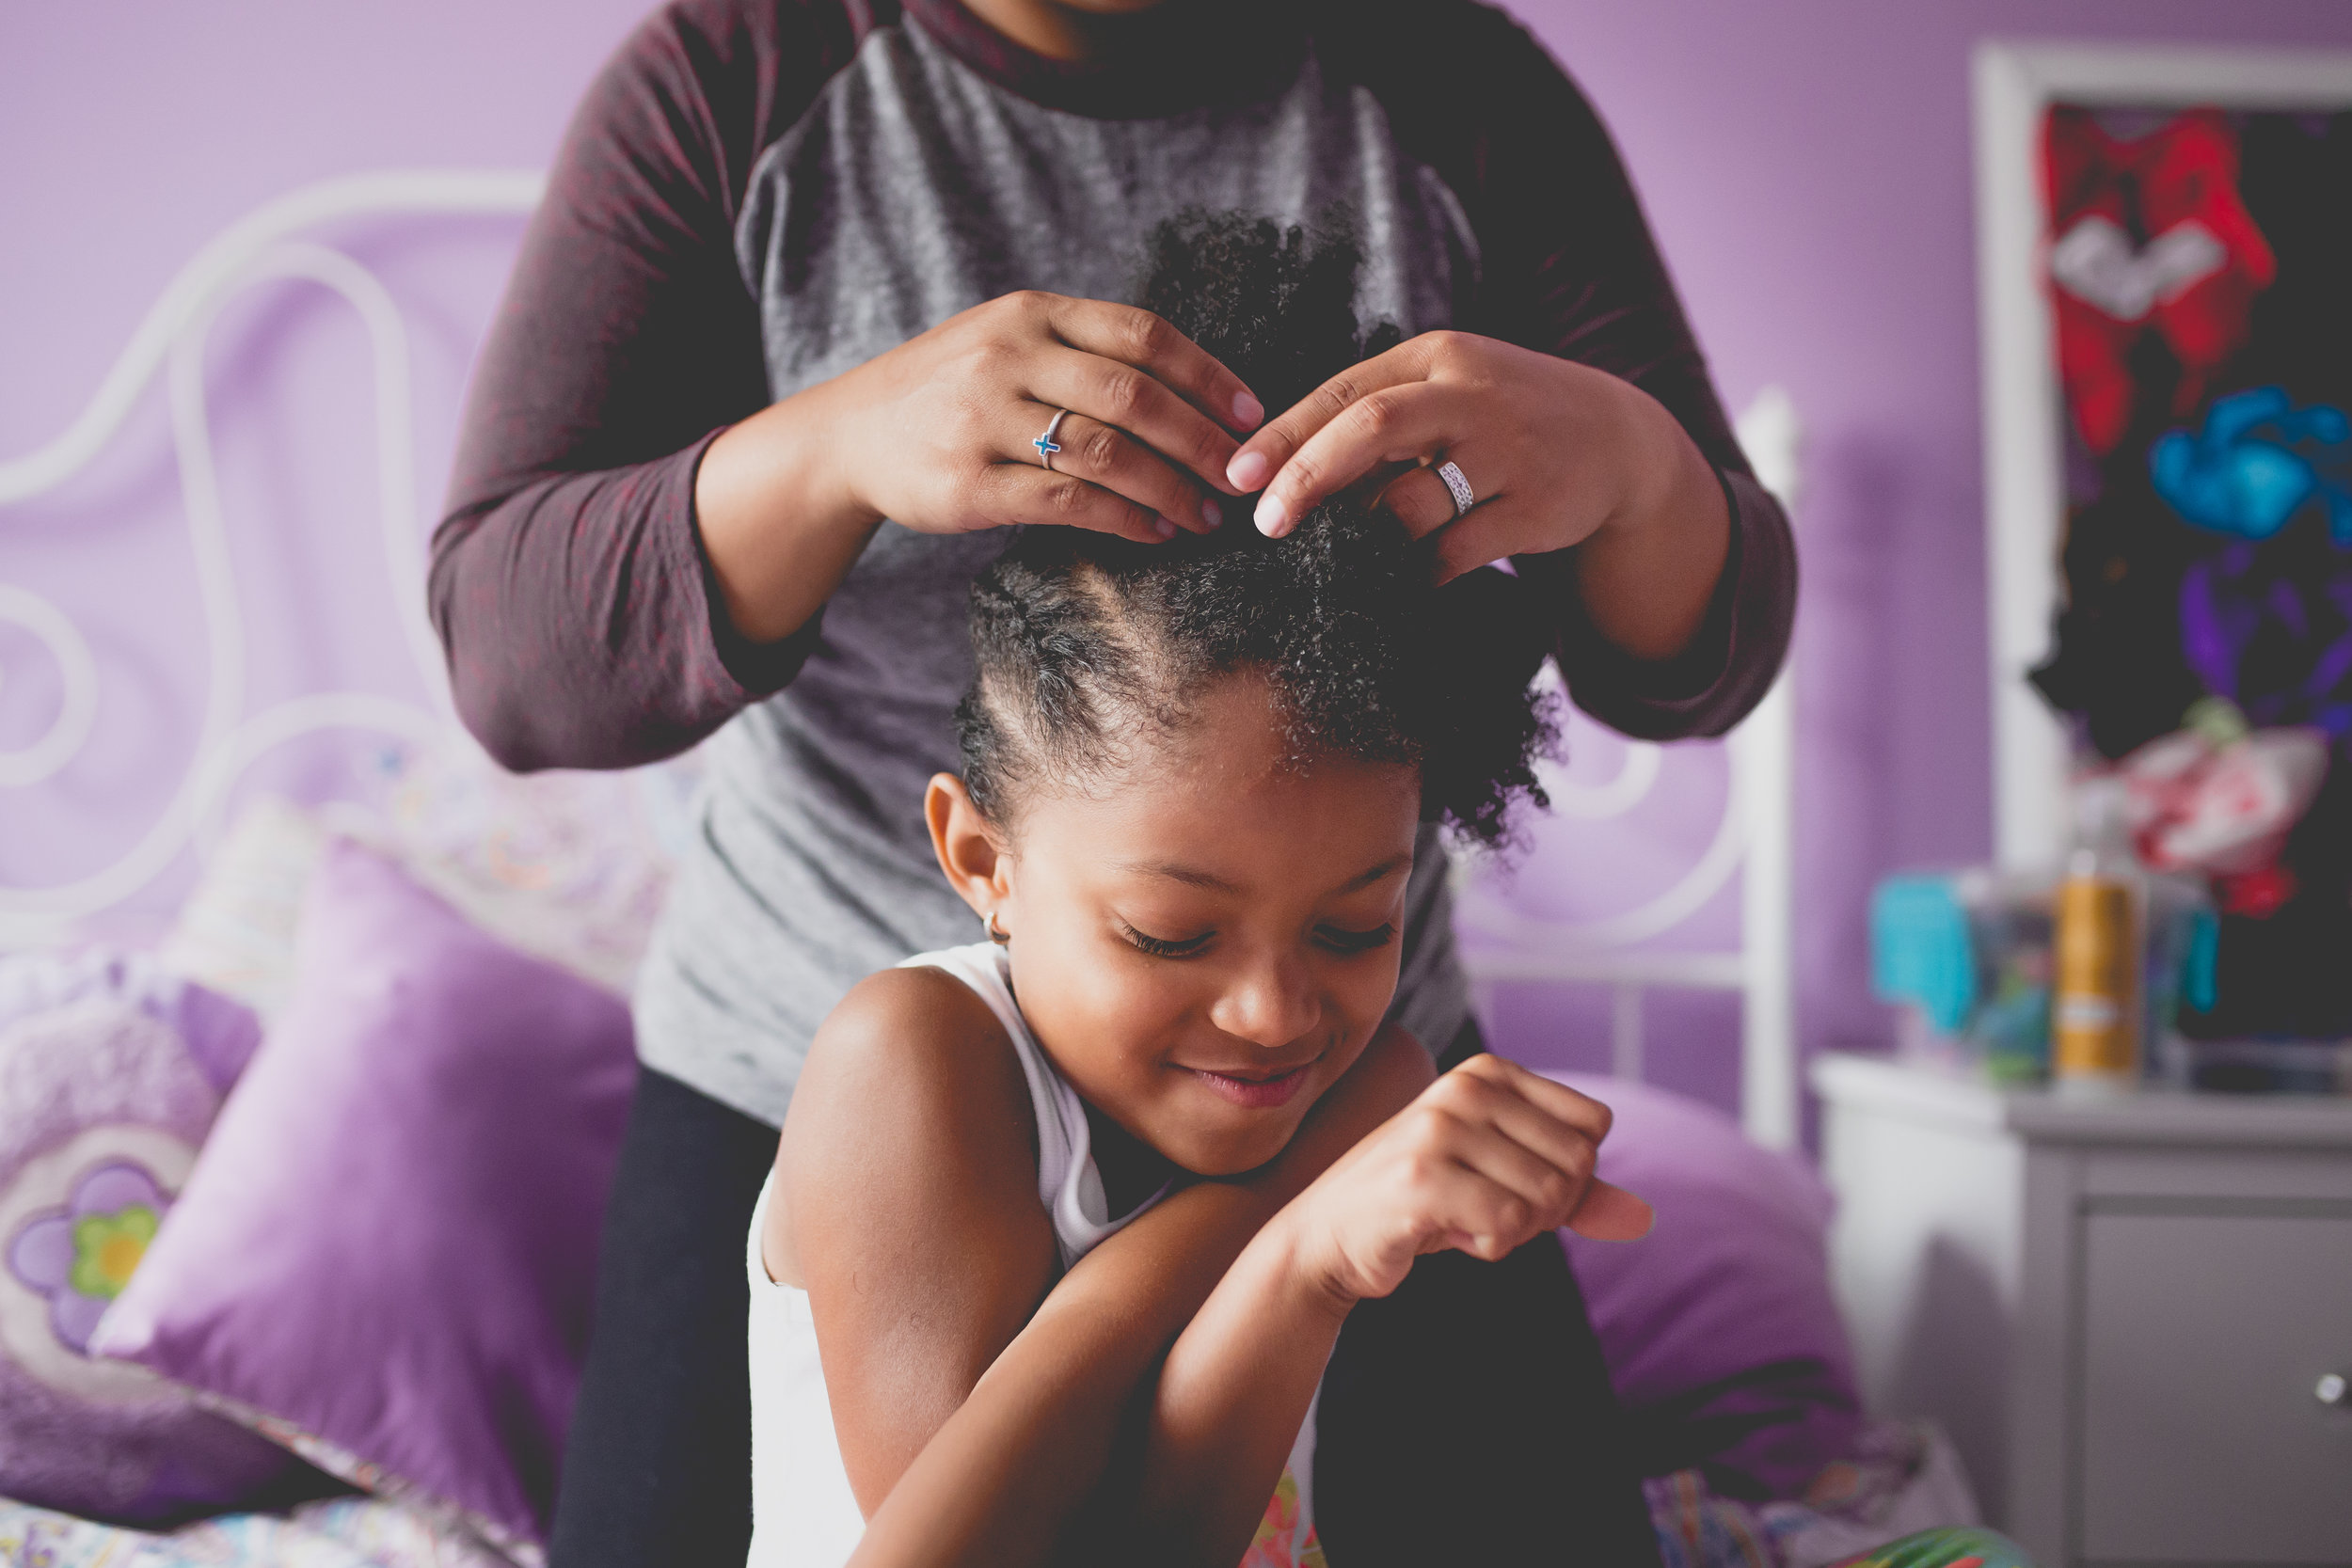 Daughter smiles while Mom puts cornrows in her hair